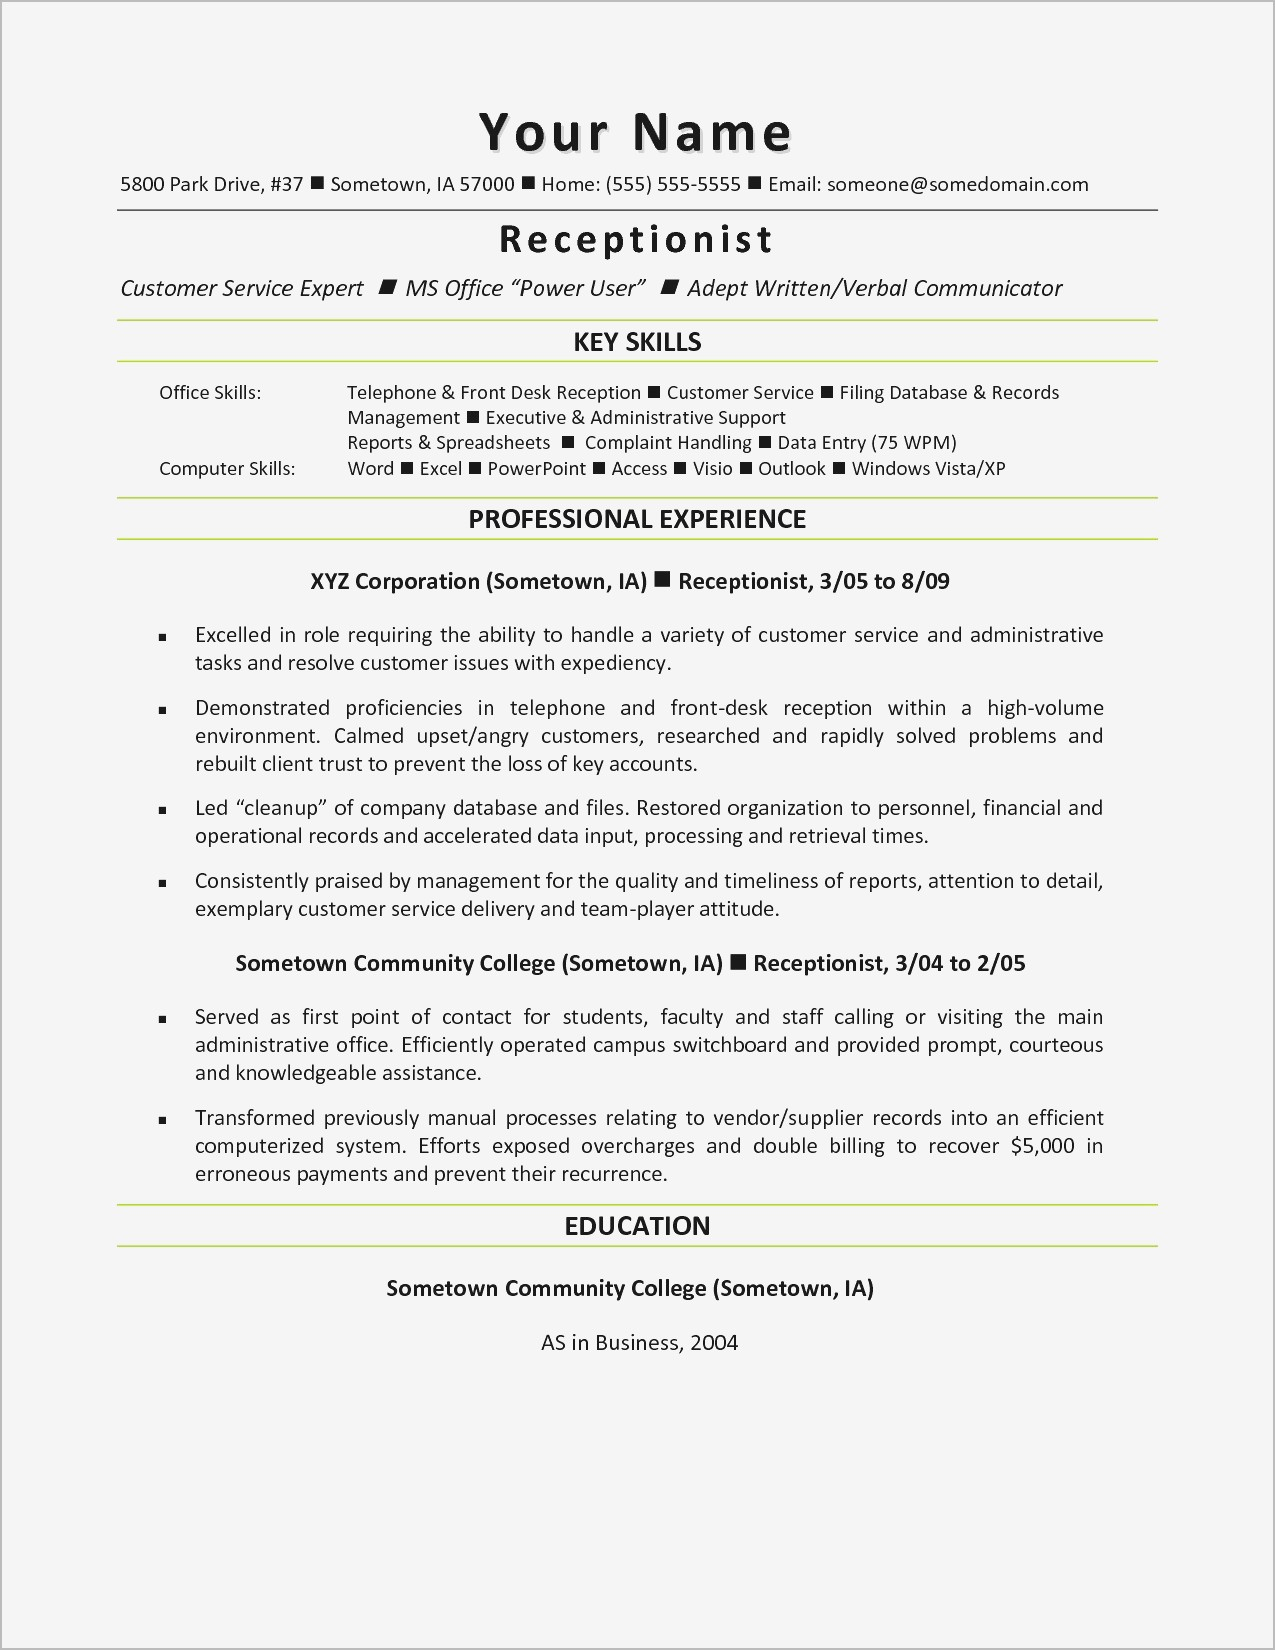 Cover Letter Template for Customer Service Job - Customer Service Cover Letter Examples Samples